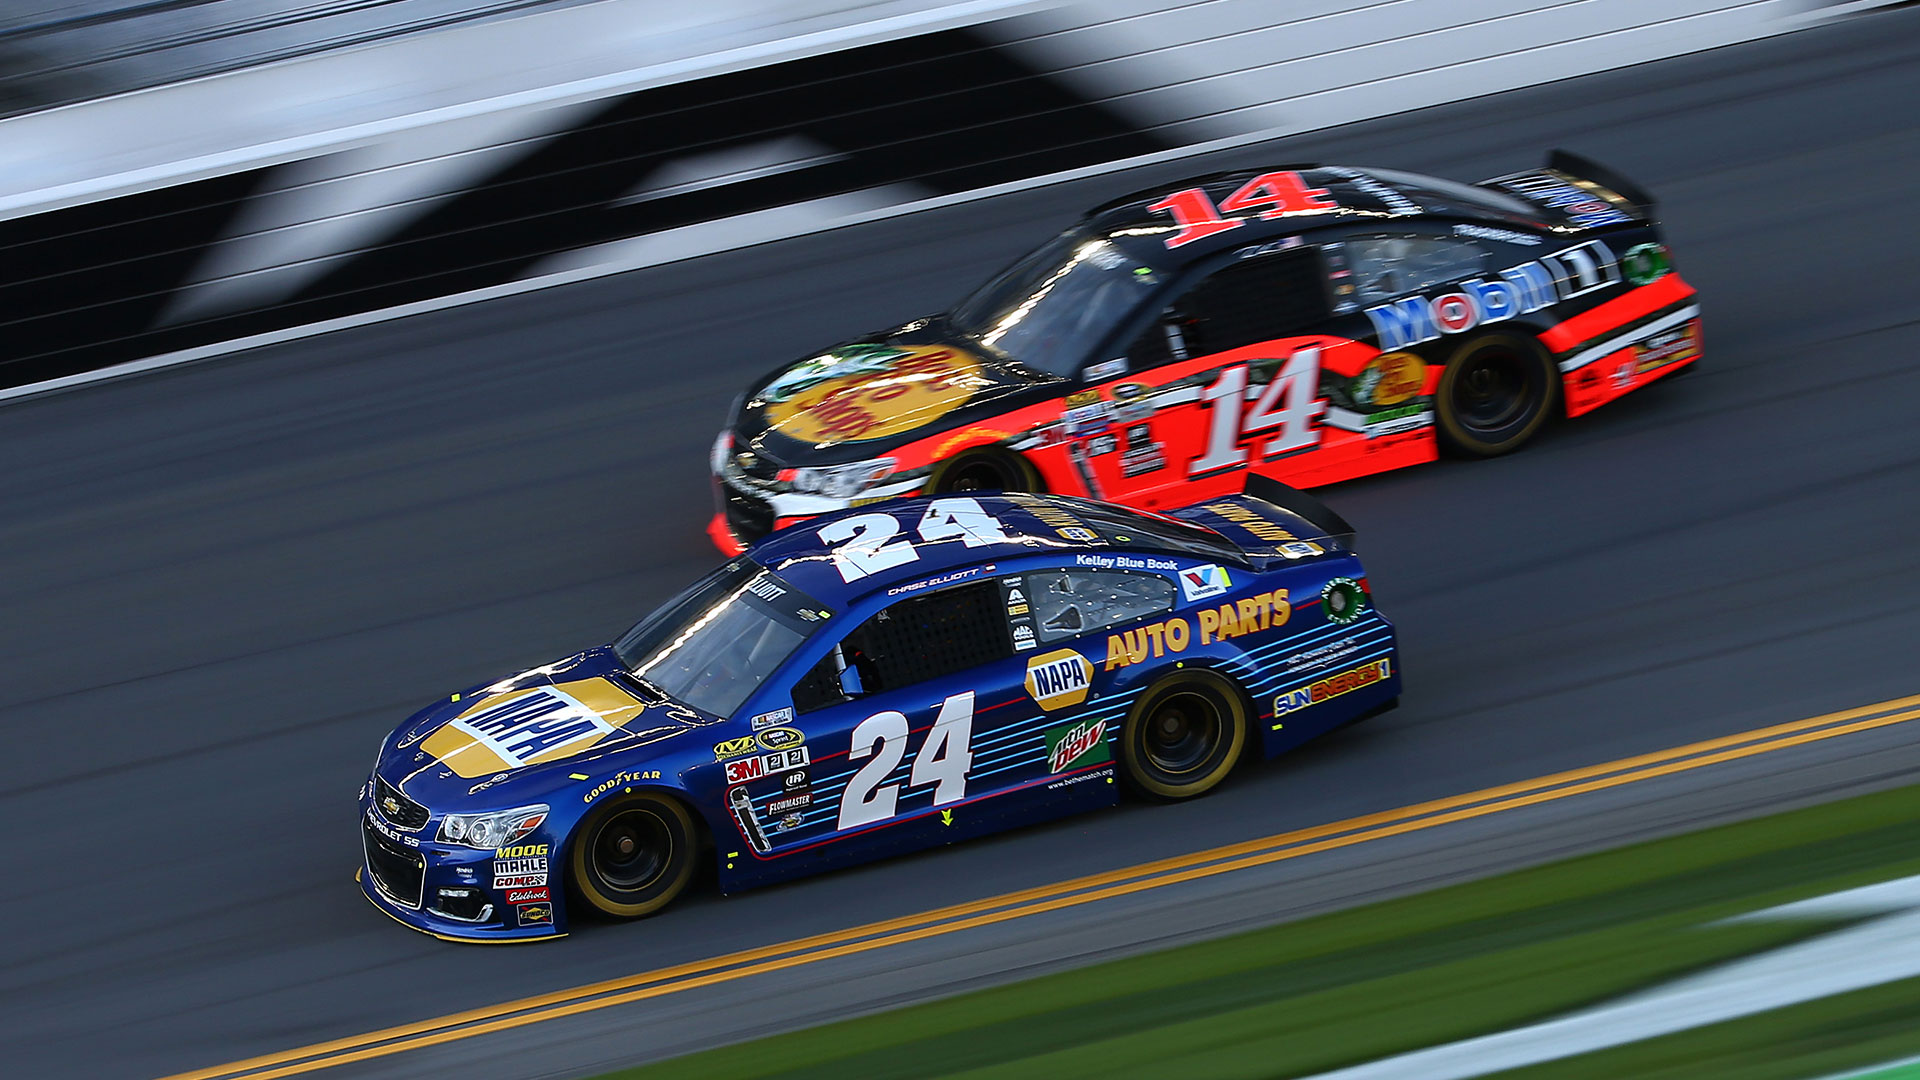 do the most popular dfs websites offer nascar betting